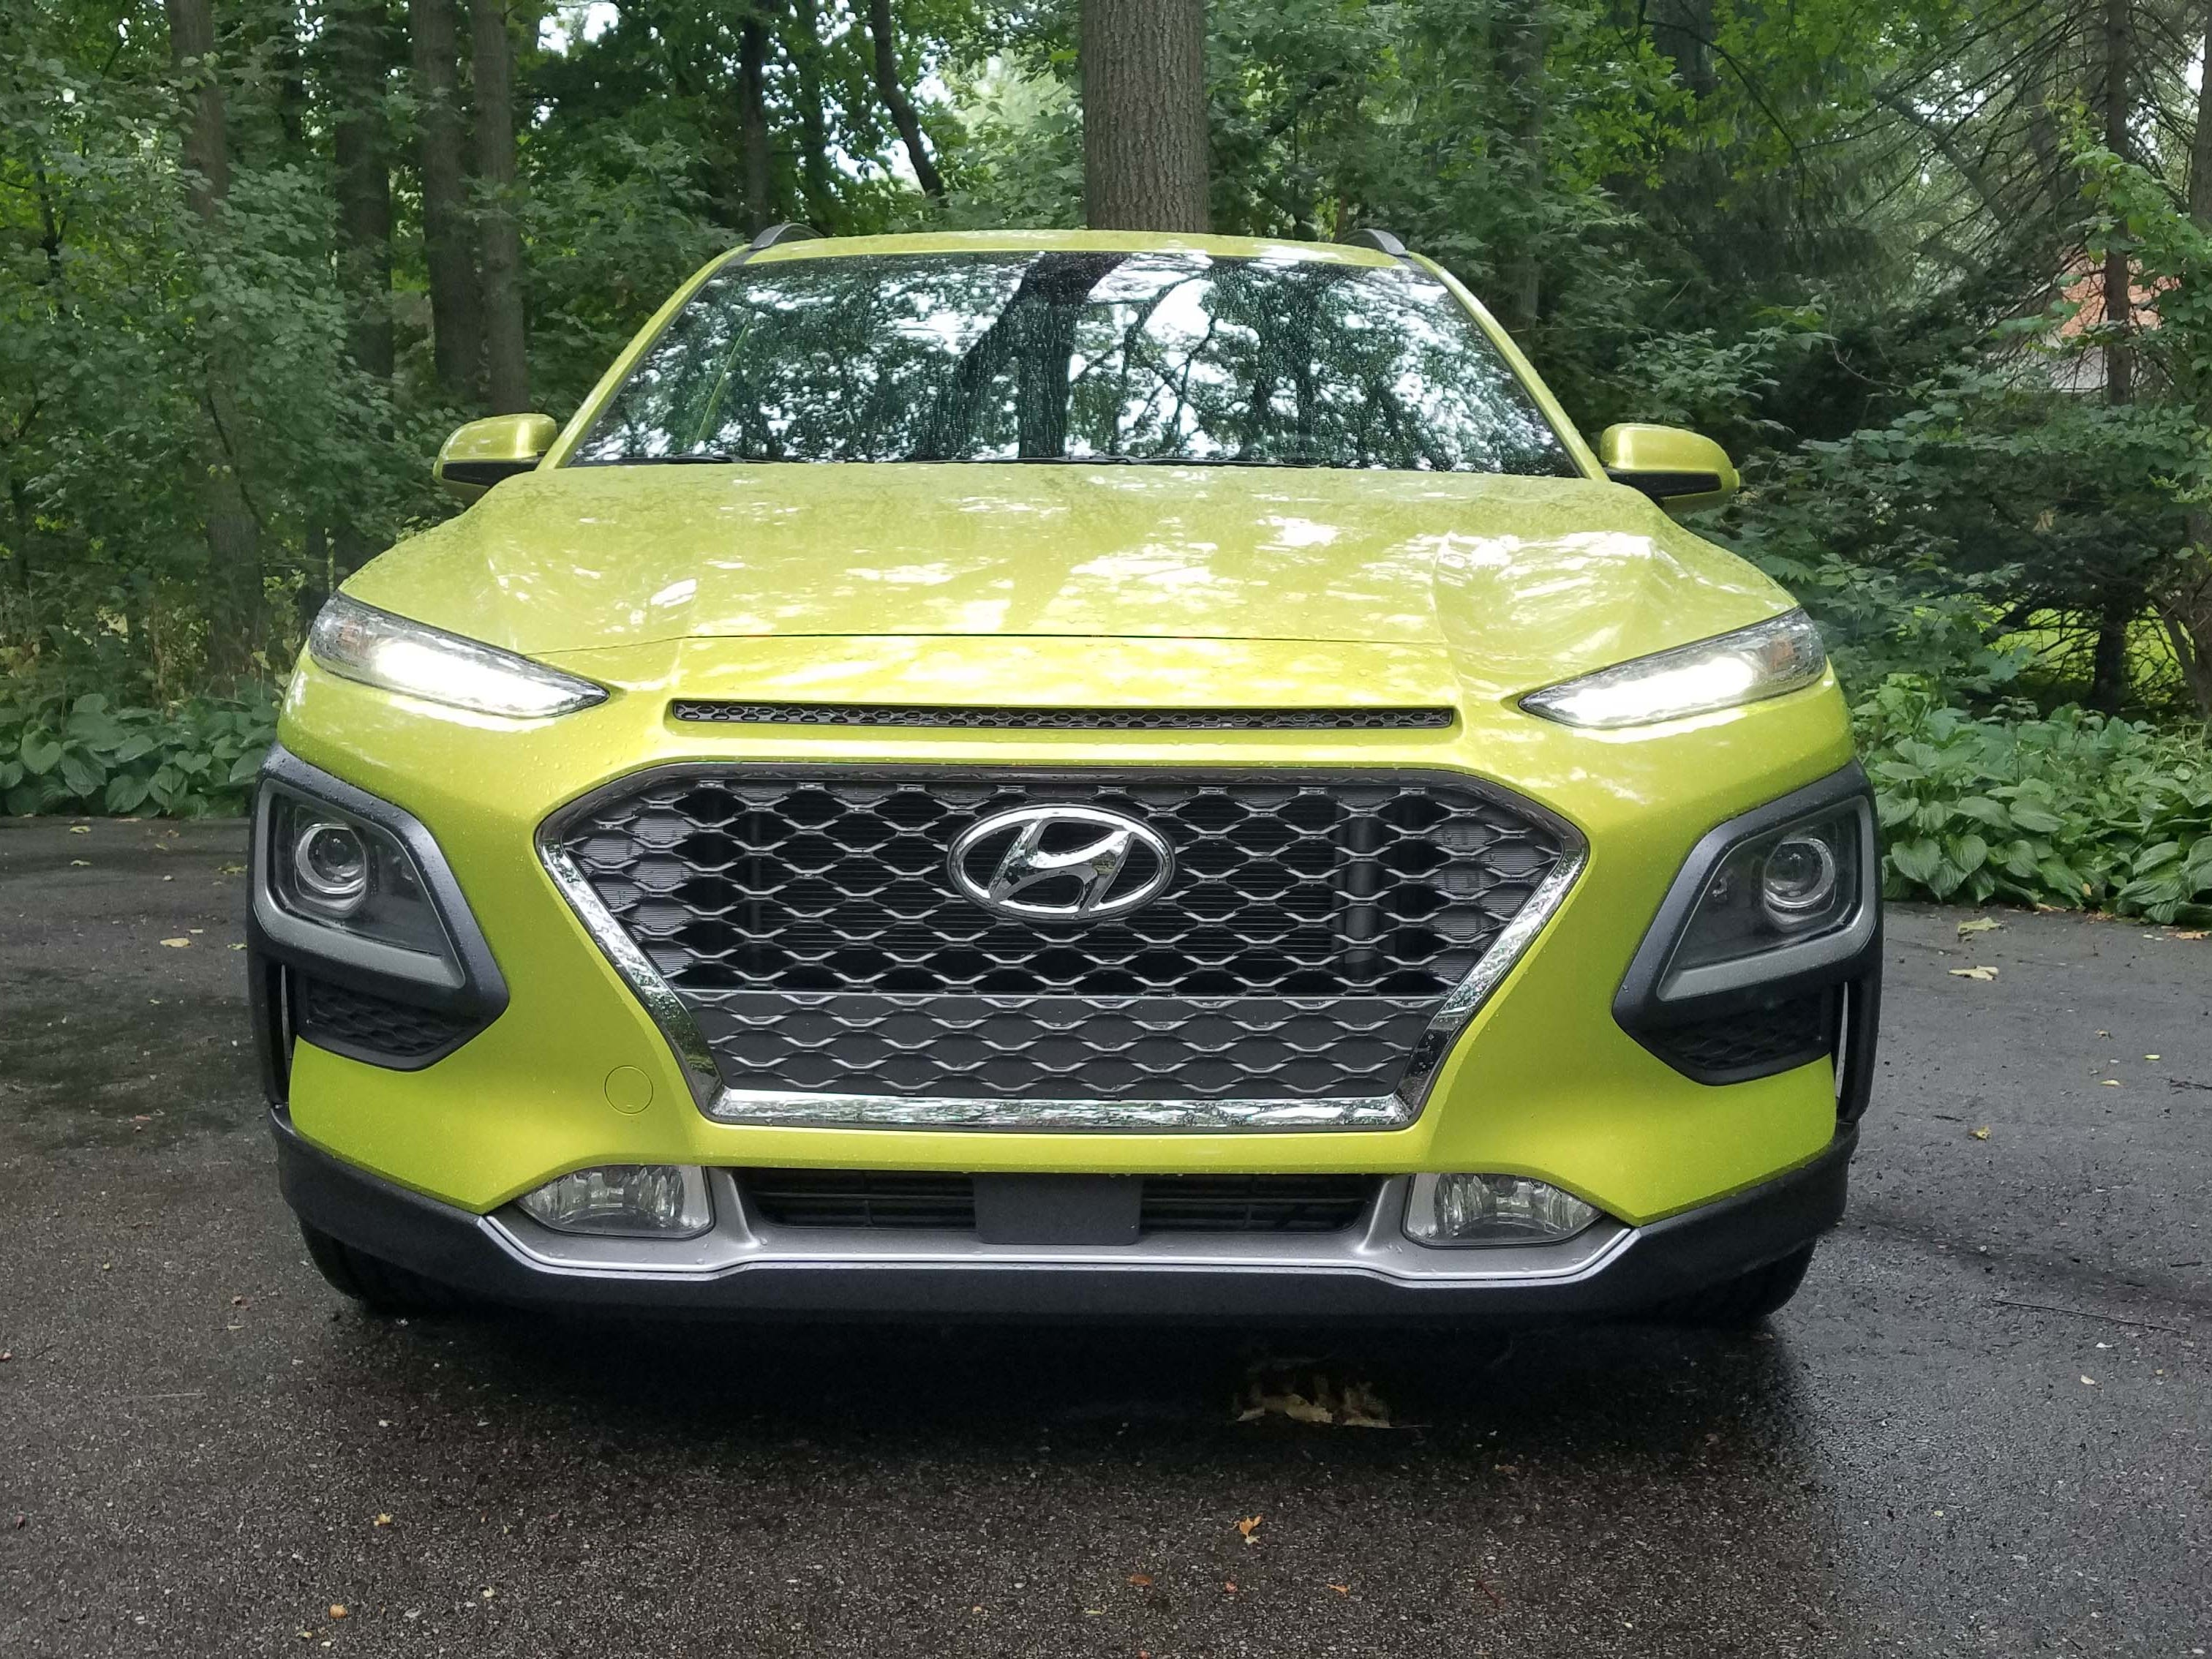 The 2018 Hyundai Kona features a funky front end reminiscent of Jeep's last-gen, 2016 Cherokee - three shelves of lights border the big grille with the running lights on top (!) and the headlights in the middle.